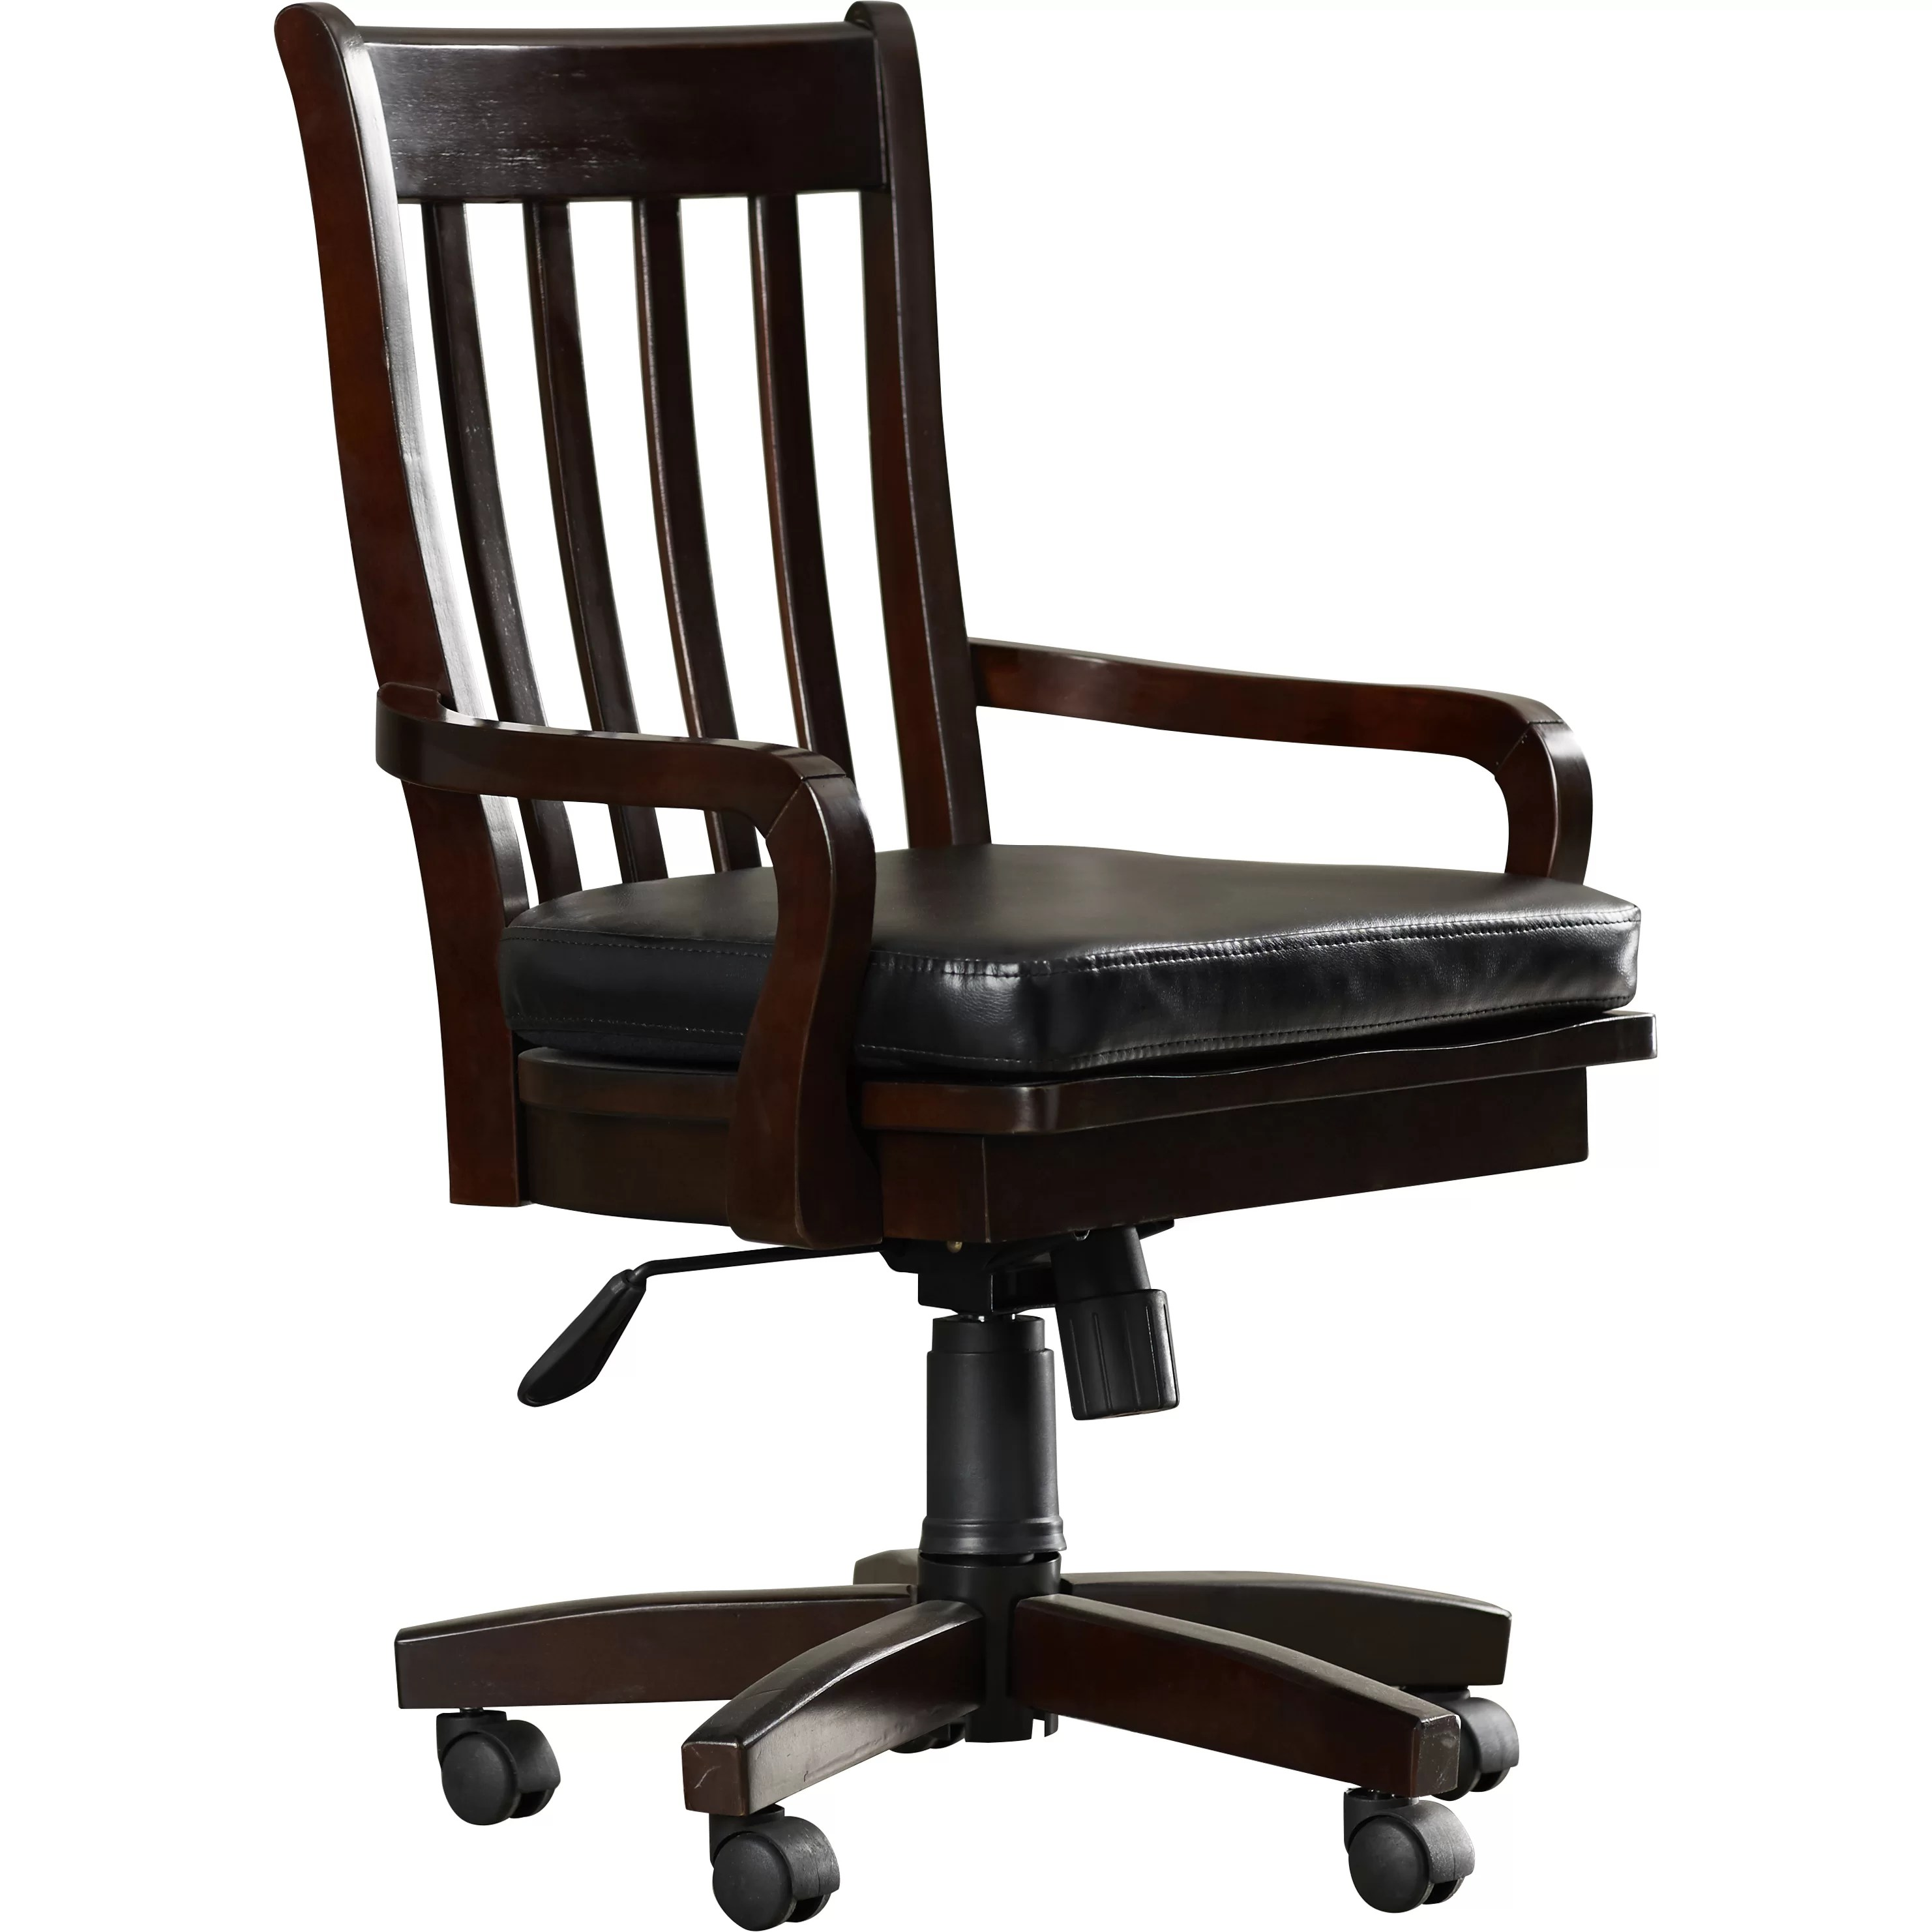 swivel chair no castors wassily reproduction three posts barrville high back arm with